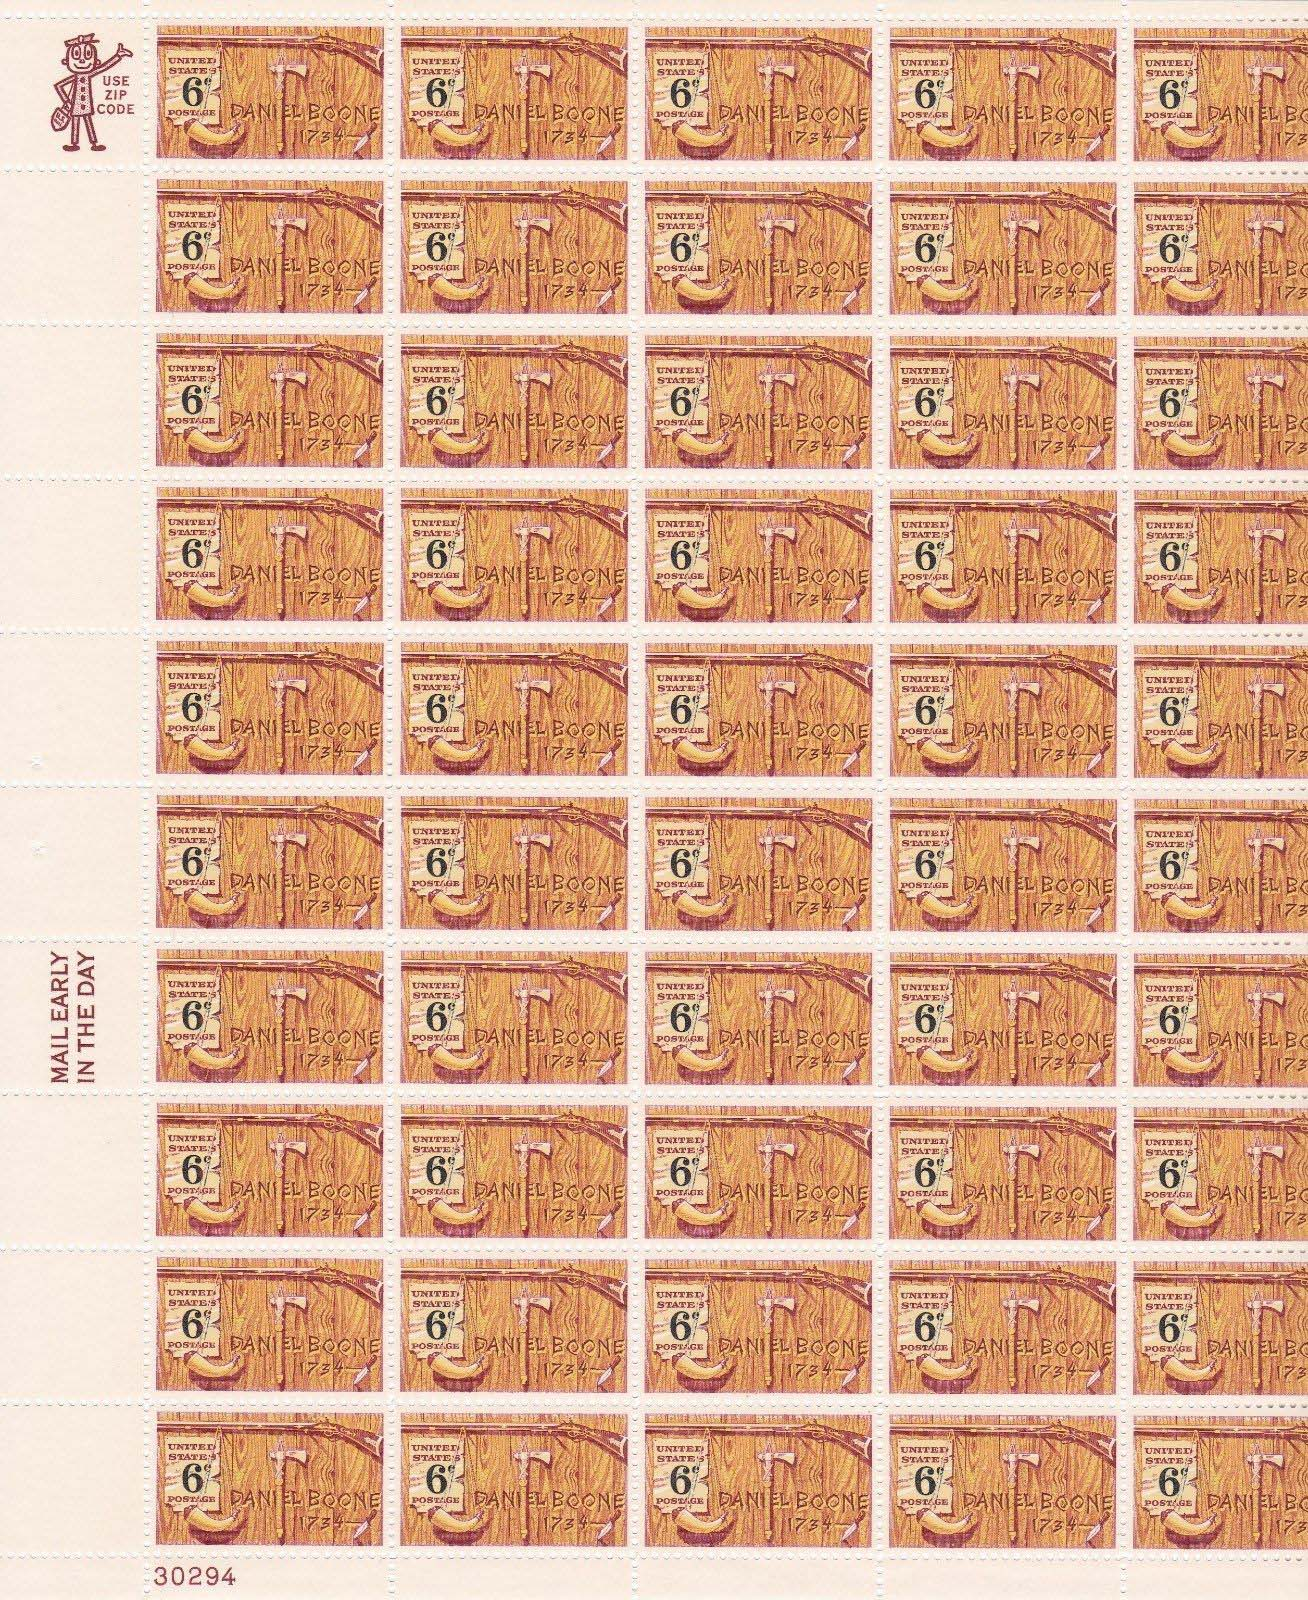 "Scott 1357 Sheet (6 cents) <p> <a href=""/images/USA-Scott-1357-Sheet.jpg""><font color=green><b>View the image</a></b></font>"